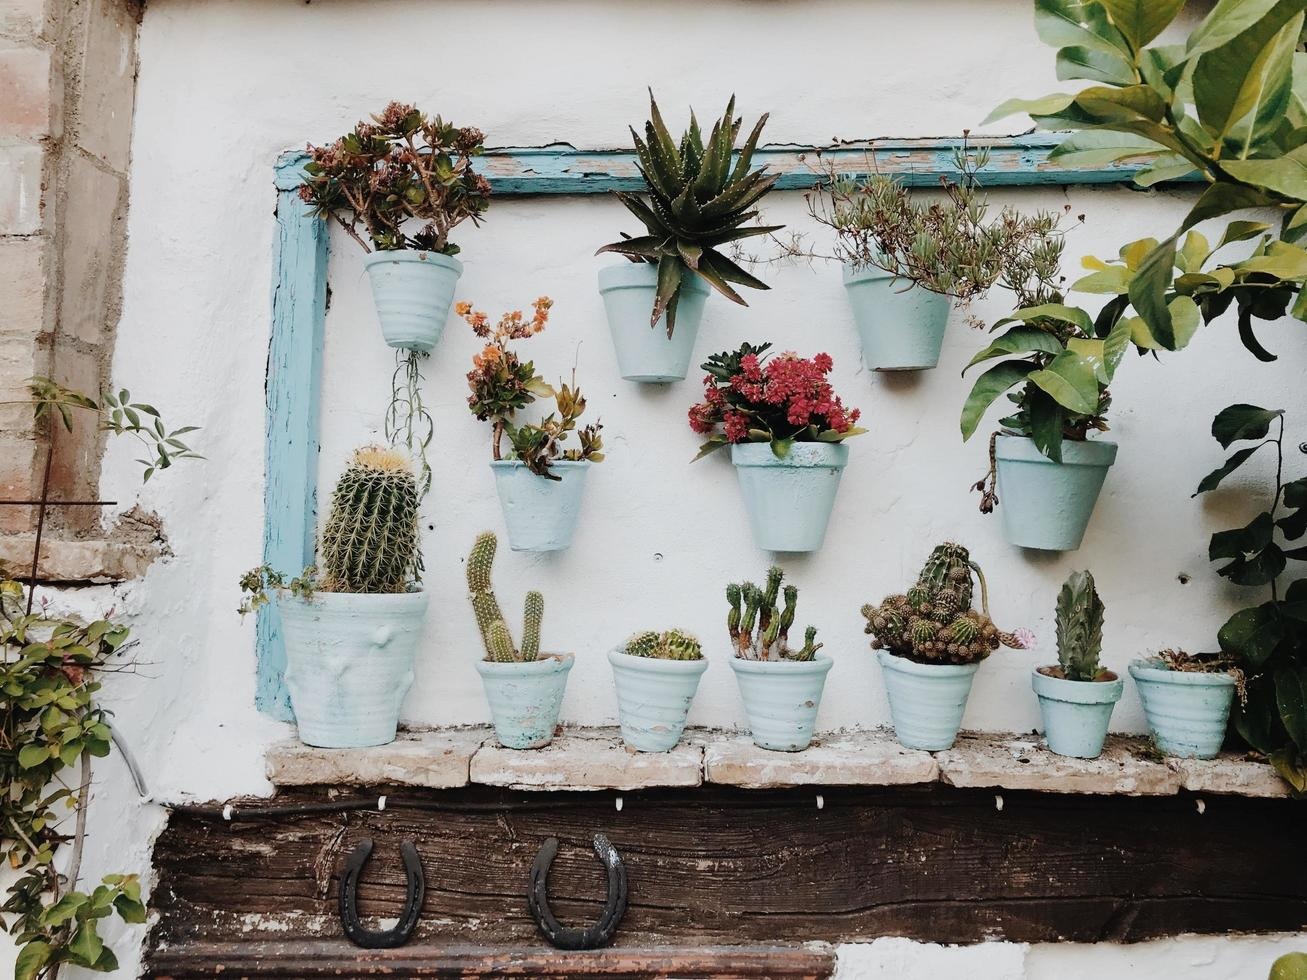 Plants in pots on wall photo